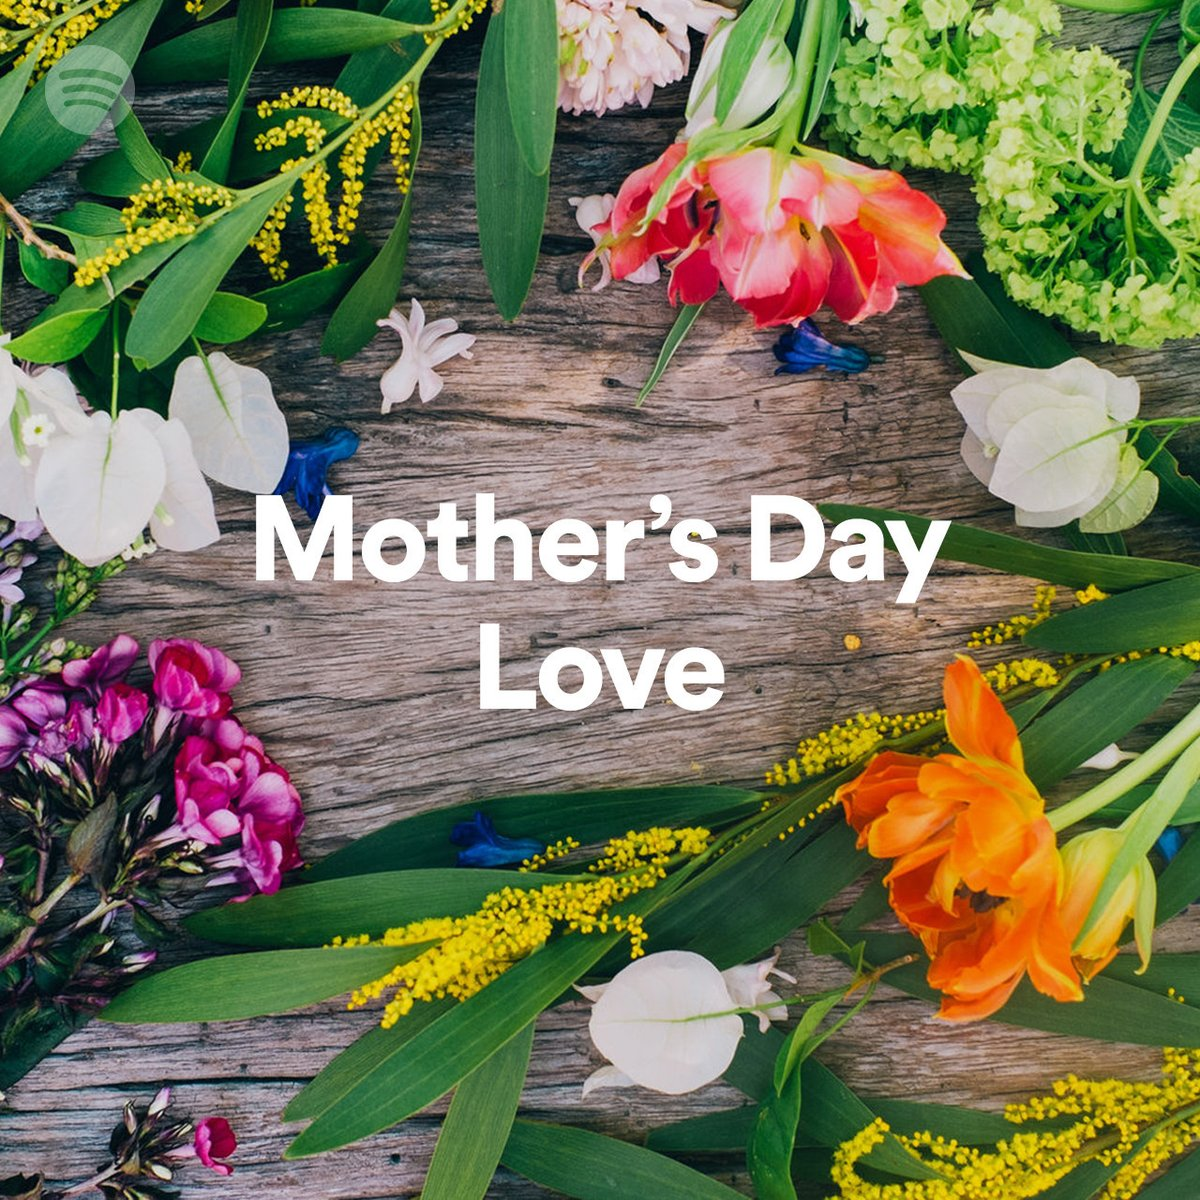 Dear Mom, Hoping that these songs help you sing and dance the day away. You deserve to. #HappyMothersDay 💜 With love, Spotify ▶️spoti.fi/MothersDayLove